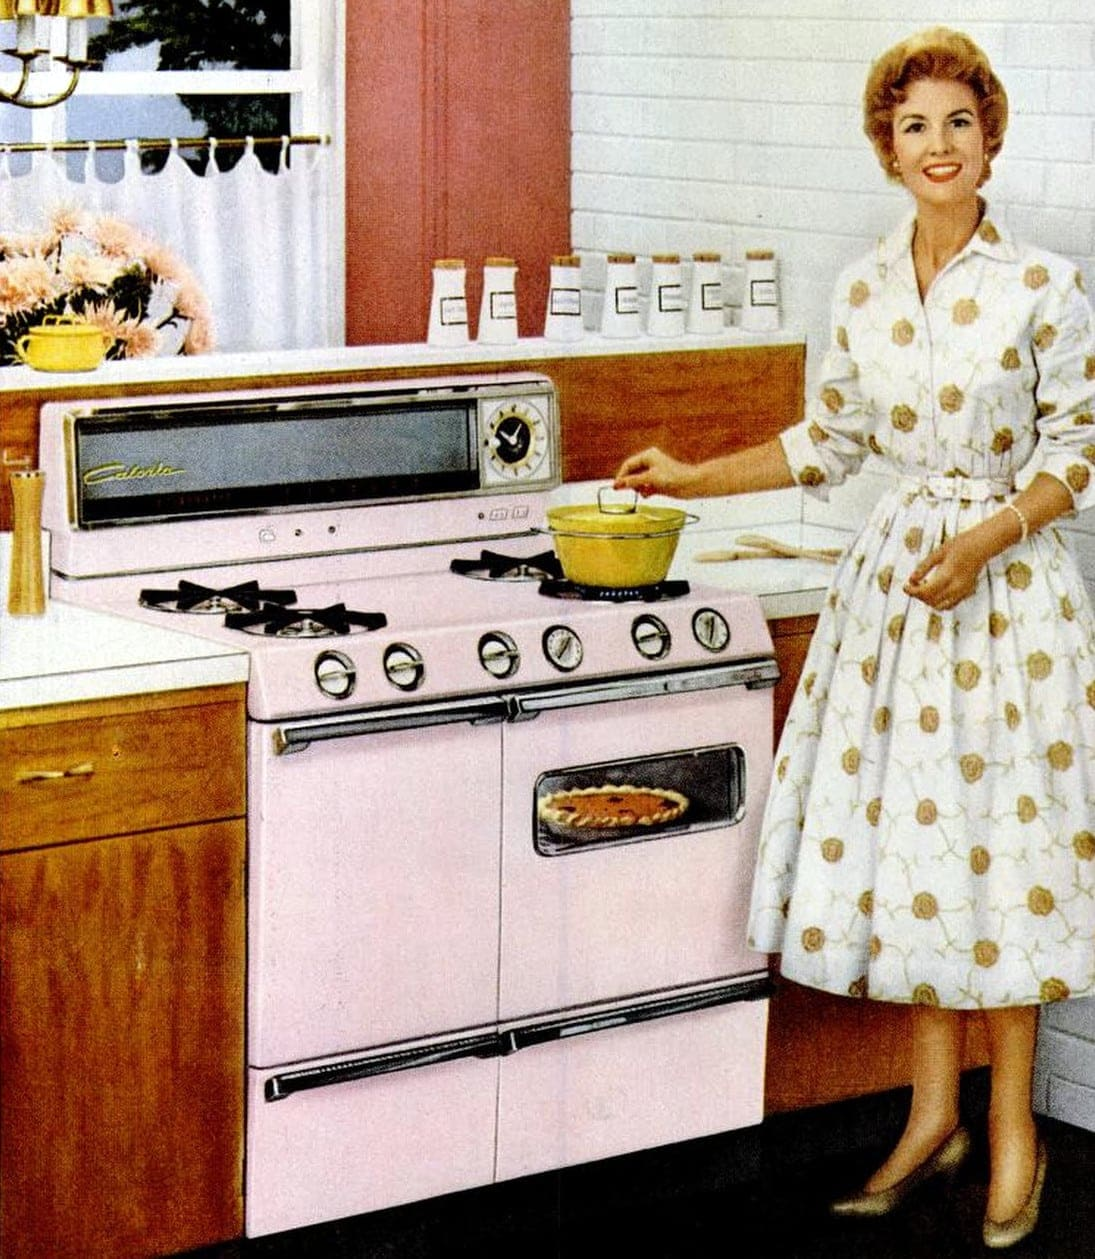 Old-fashioned pink range in a 1958 Kitchen